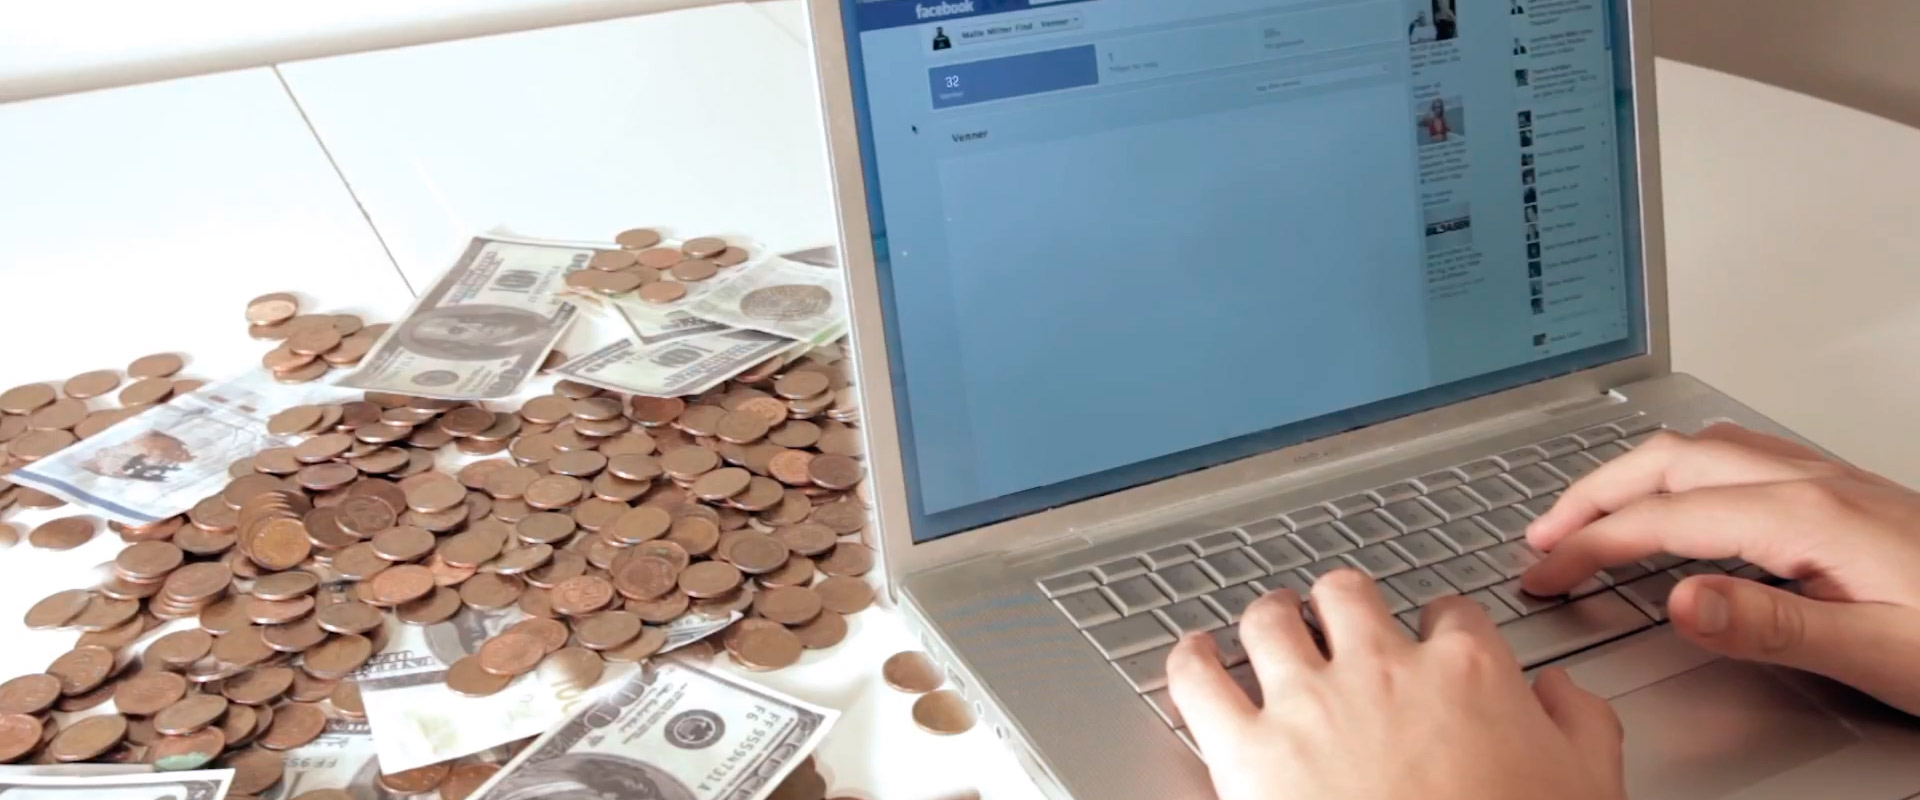 Losing friends on Facebook = making more money.